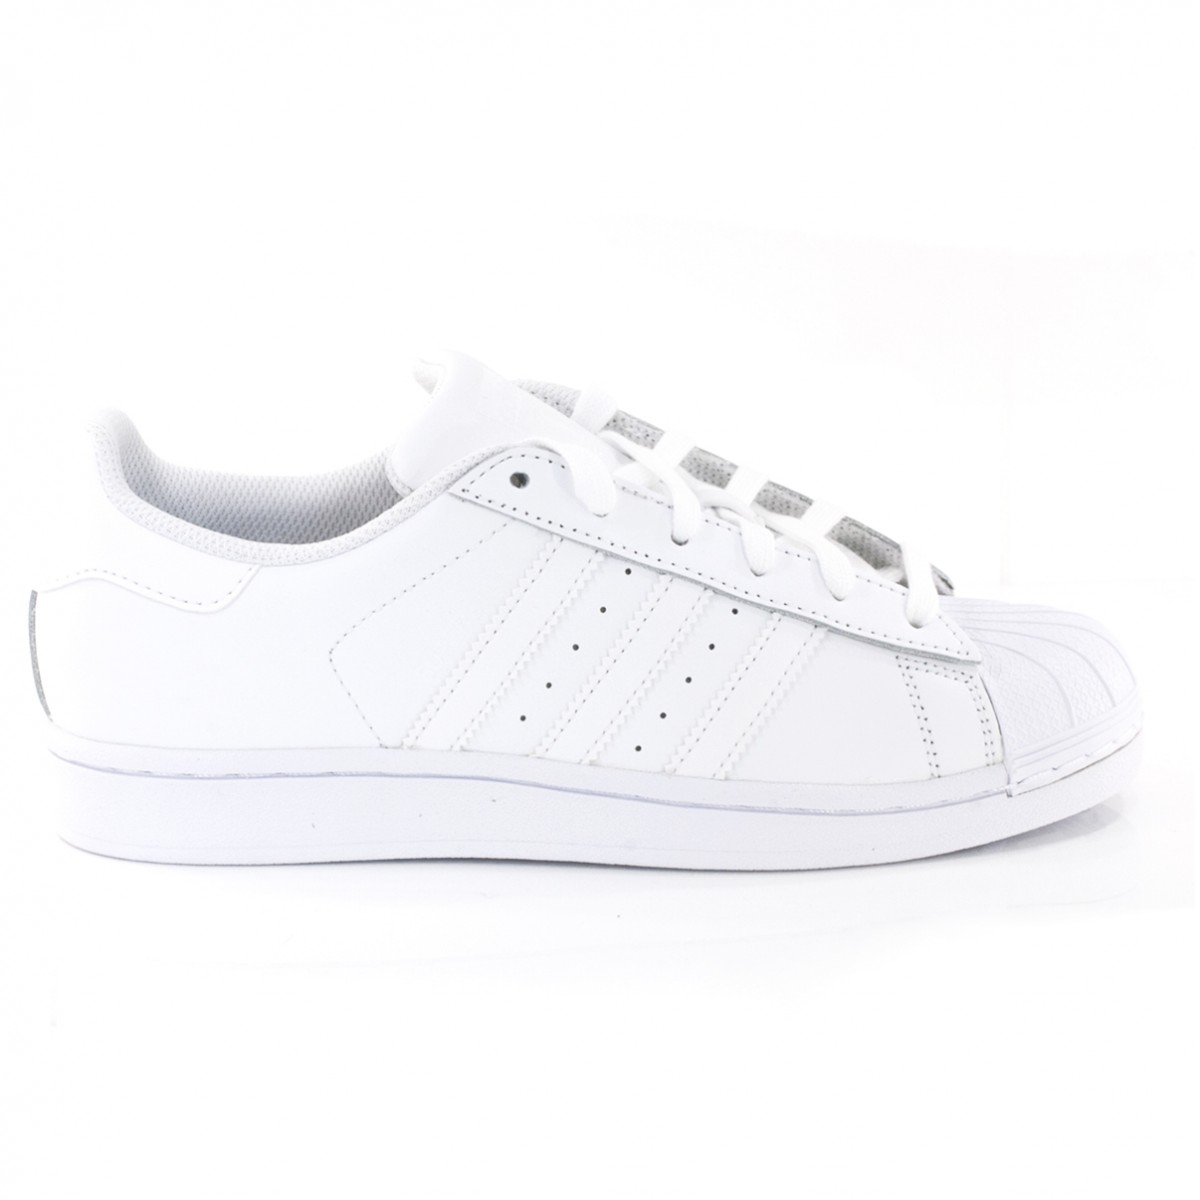 buy popular af286 6218a ... ADIDAS SUPER STAR STRASS TOTAL LOOK